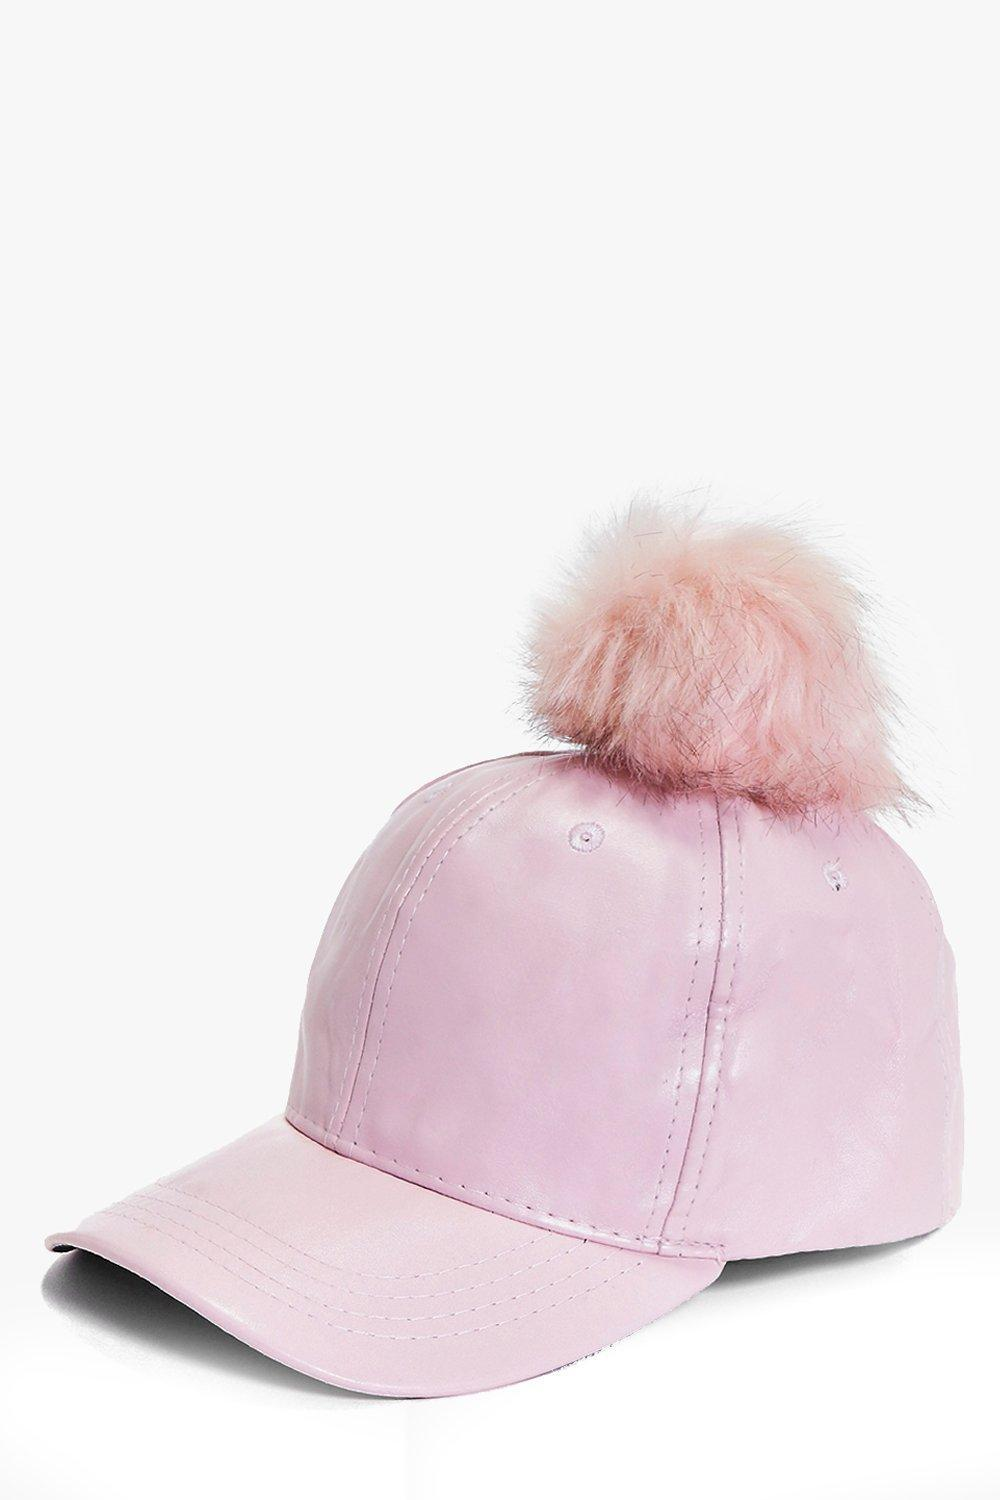 Pu And Faux Fur Pom Baseball Cap Pink - predominant colour: blush; occasions: casual; type of pattern: standard; style: cap; size: standard; material: fabric; pattern: plain; embellishment: pompom; wardrobe: basic; season: a/w 2016